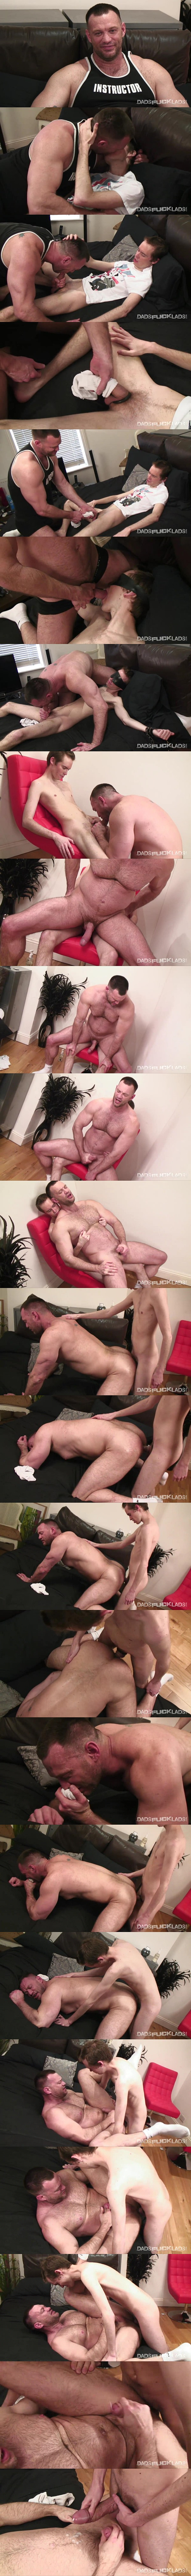 Twinktop - big-cocked lad Steven Prior fucks masculine Aussie muscle daddy Aaron Cage's firm ass in this older younger scene until he fucks the cum out of Aaron 02